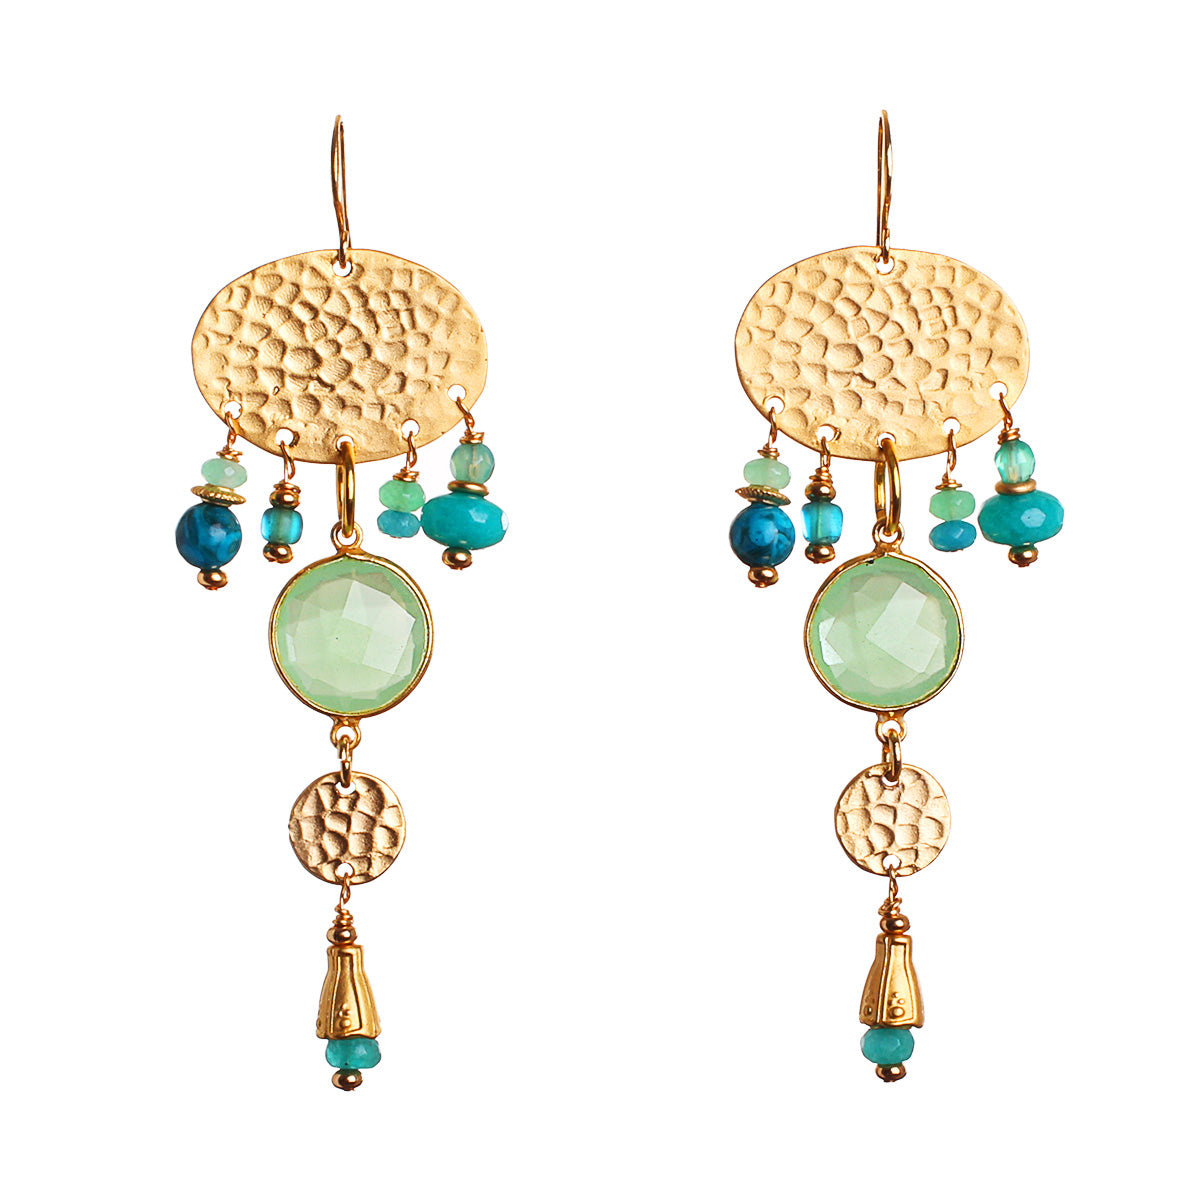 N°585 The Chalcedony 5th Dimension Statement Earrings